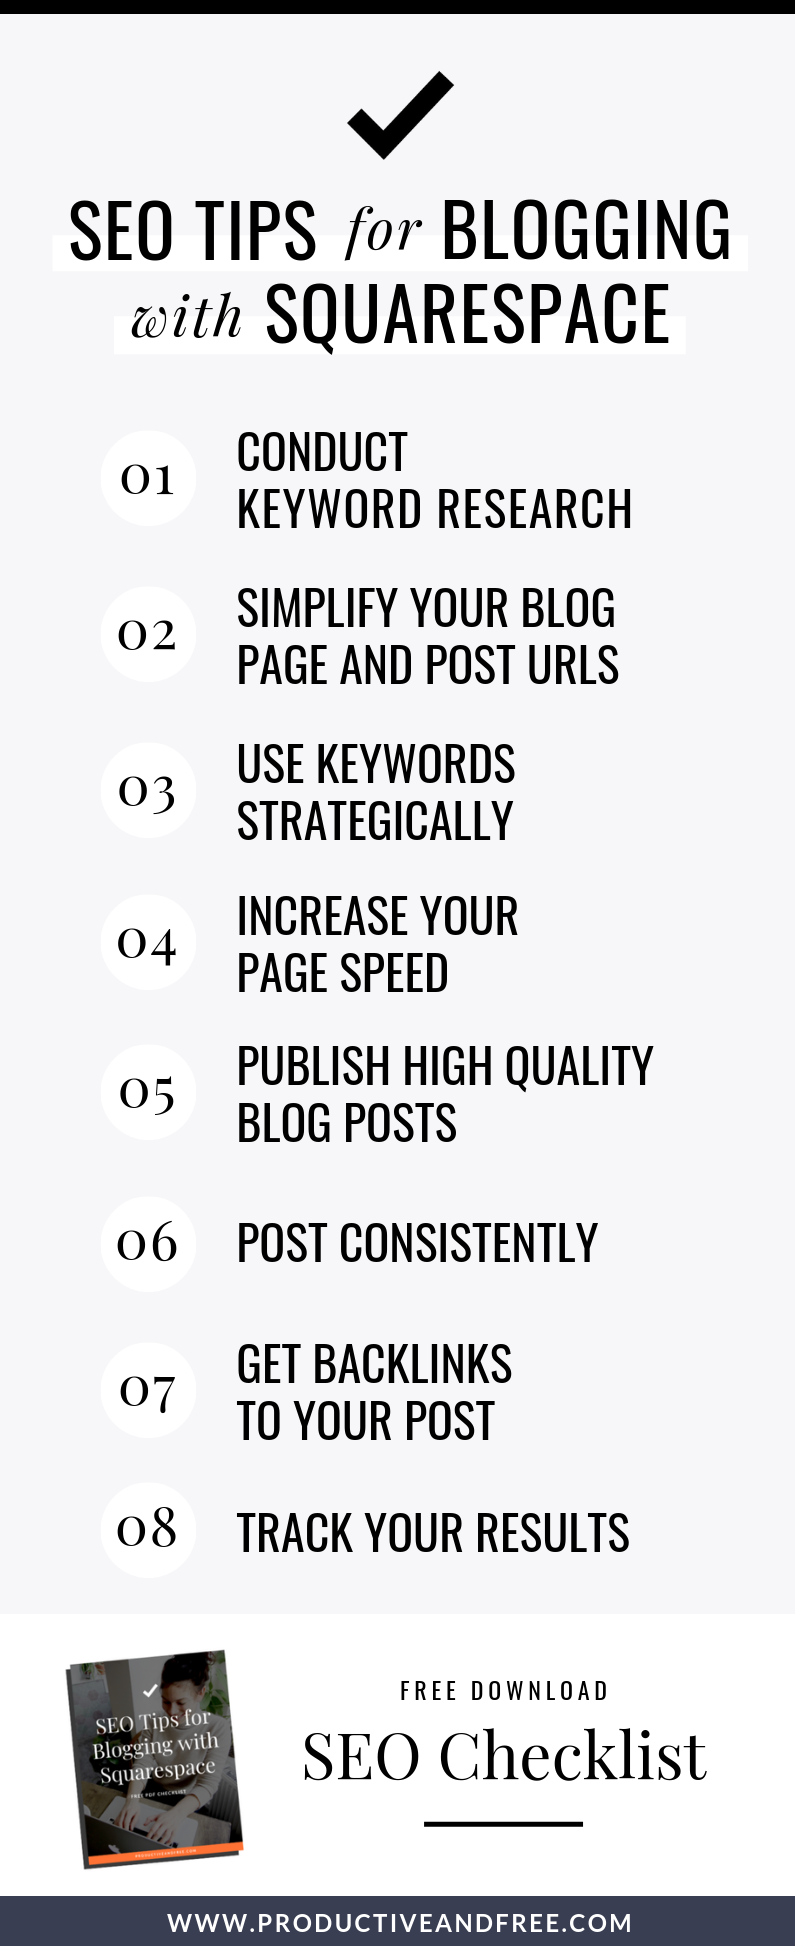 SEO Tips for Blogging with Squarespace (With Checklist) | Productiveandfree.com